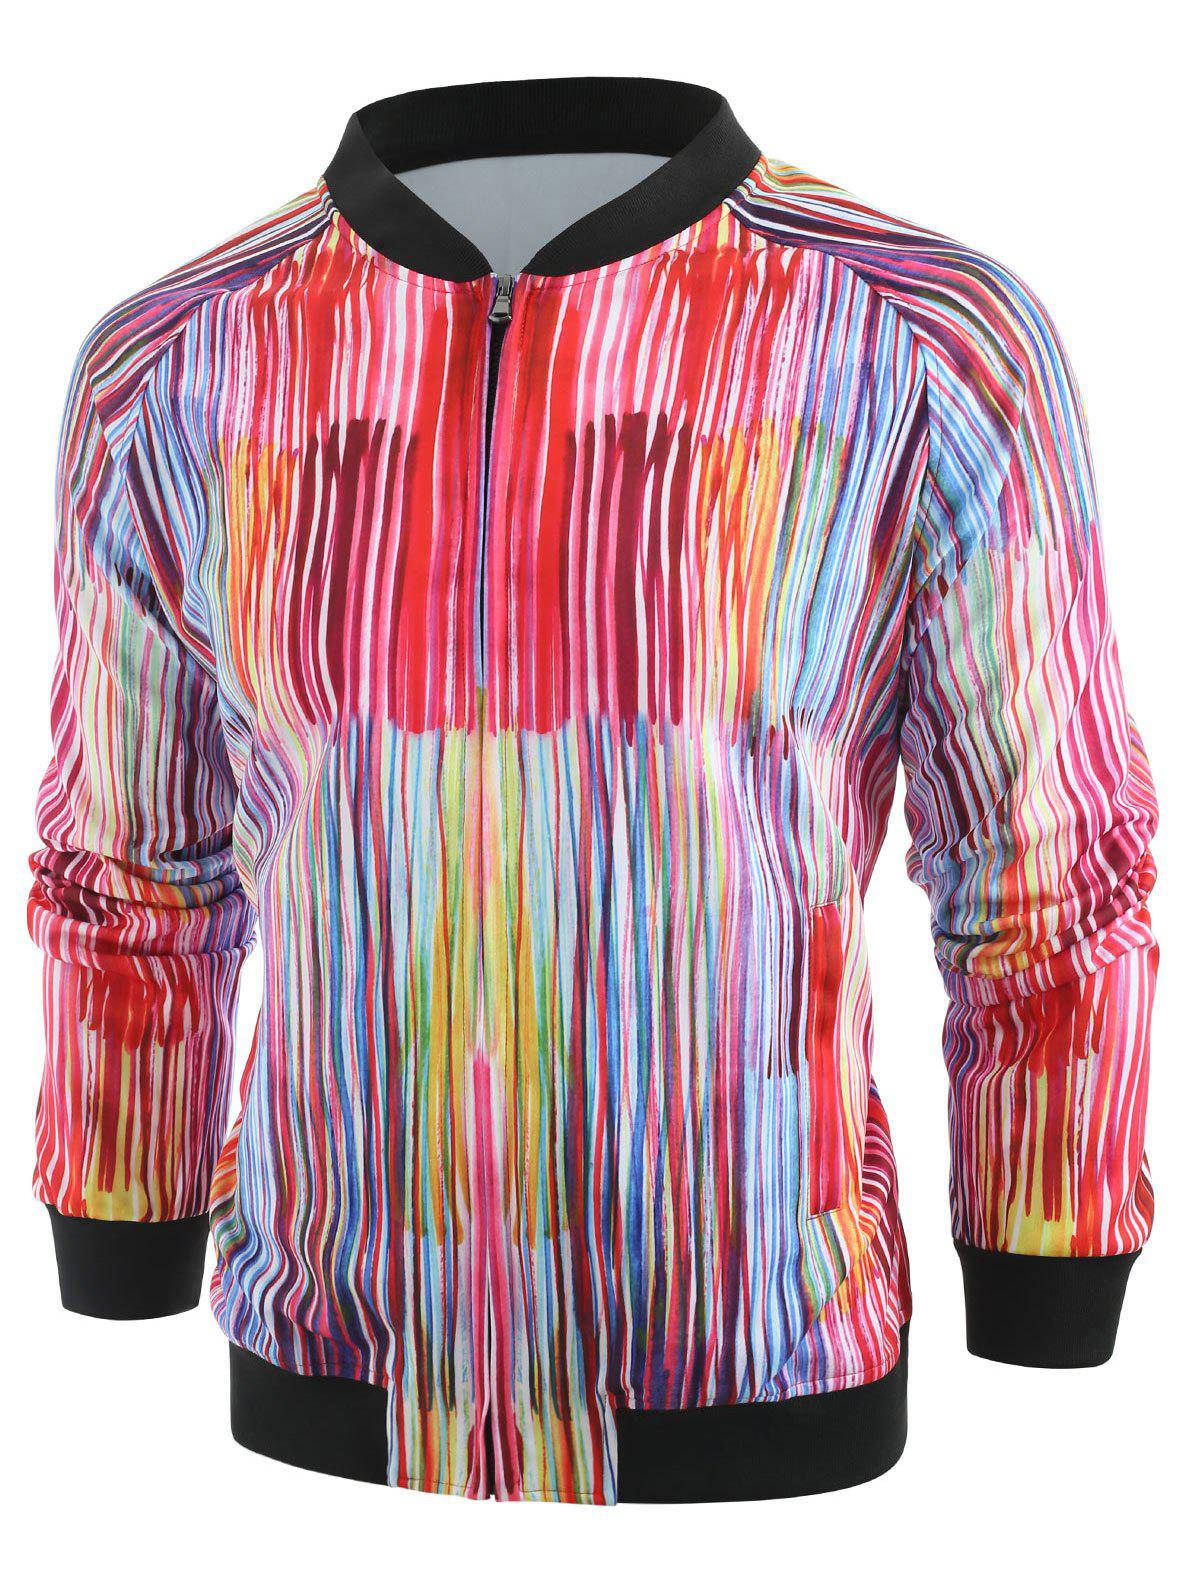 Shops Colorful Line Print Zip Up Jacket